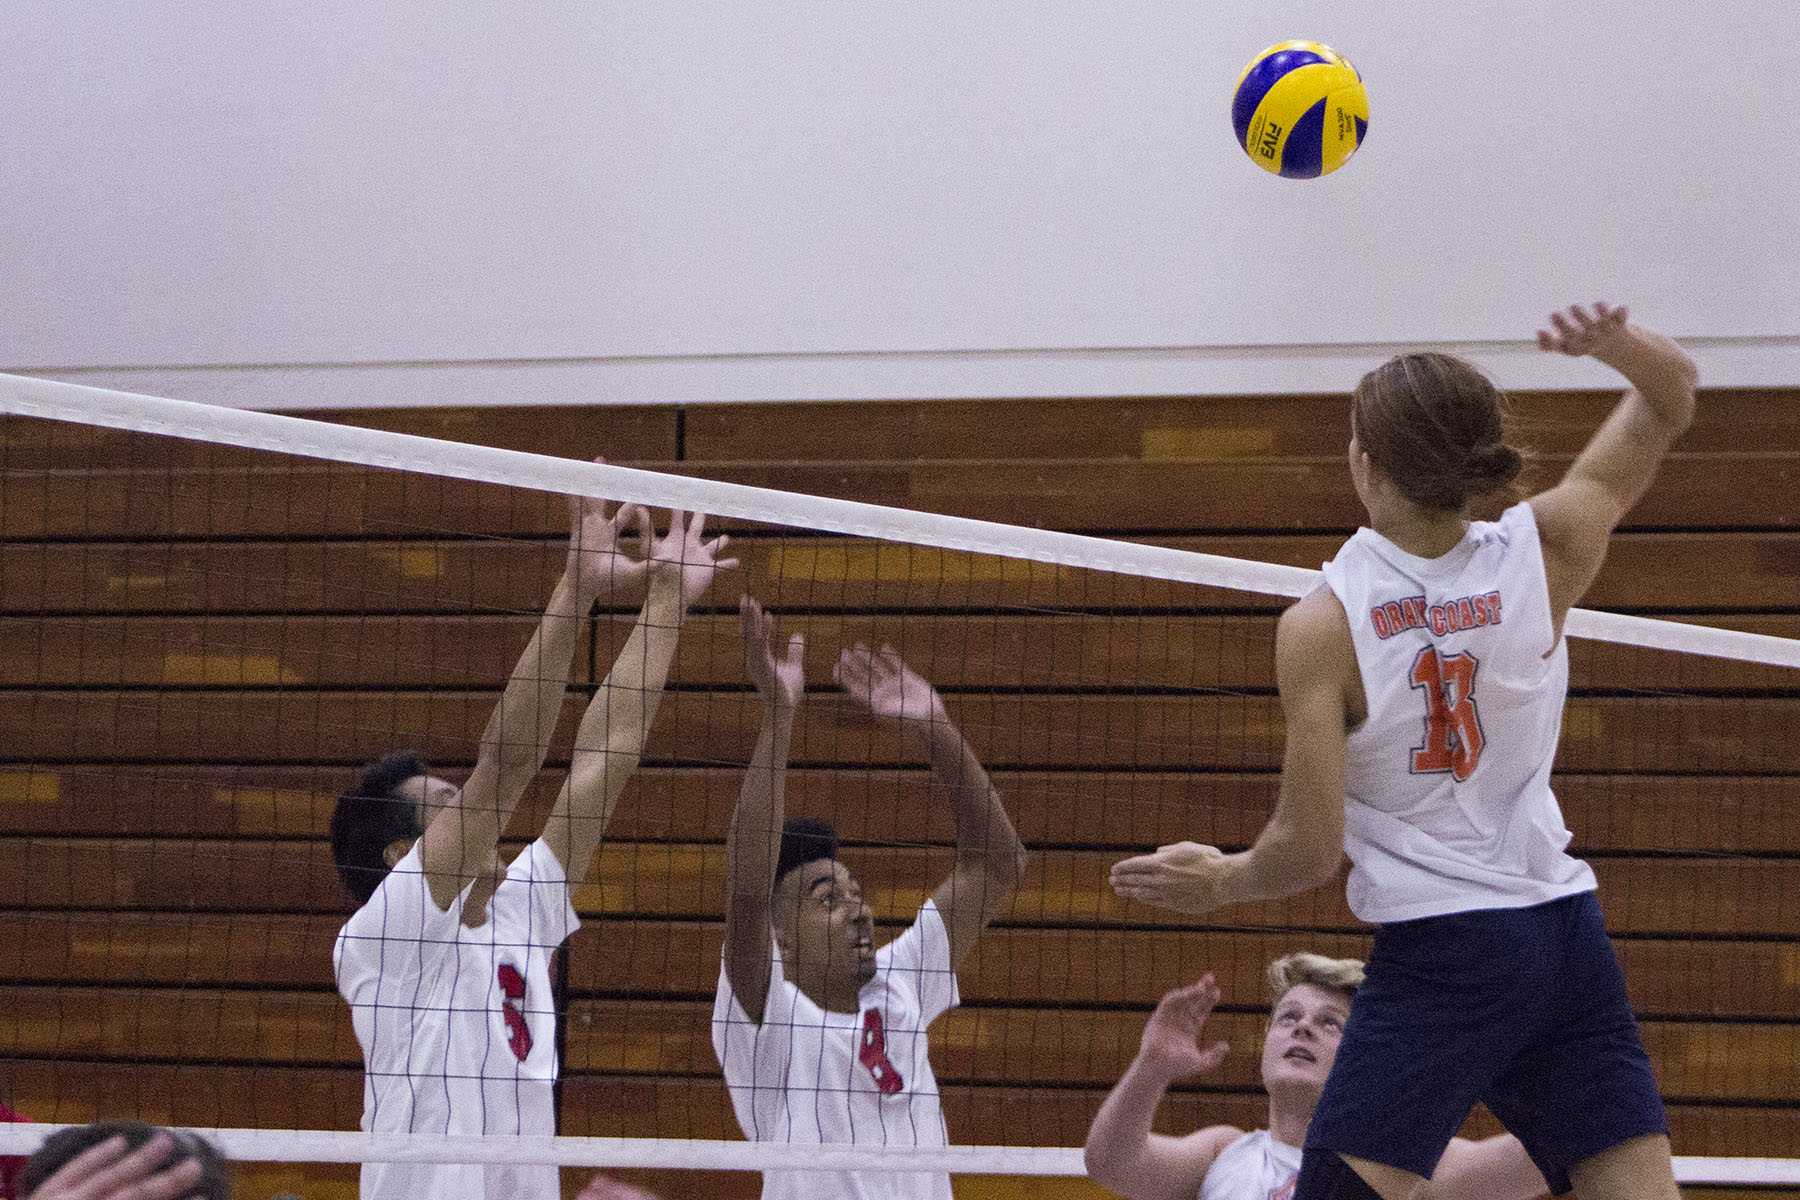 City college Vaqueros Matt Hall (left), and Haward Gomes (middle) unsuccessfully attempt to block Orange Coast College Pirate Will Donald's (right) attack resulting in a kill for the pirates at 1 p.m. Saturday, Feb. 6, in the Sports Pavilion. The Vaqueros lost 0-3.